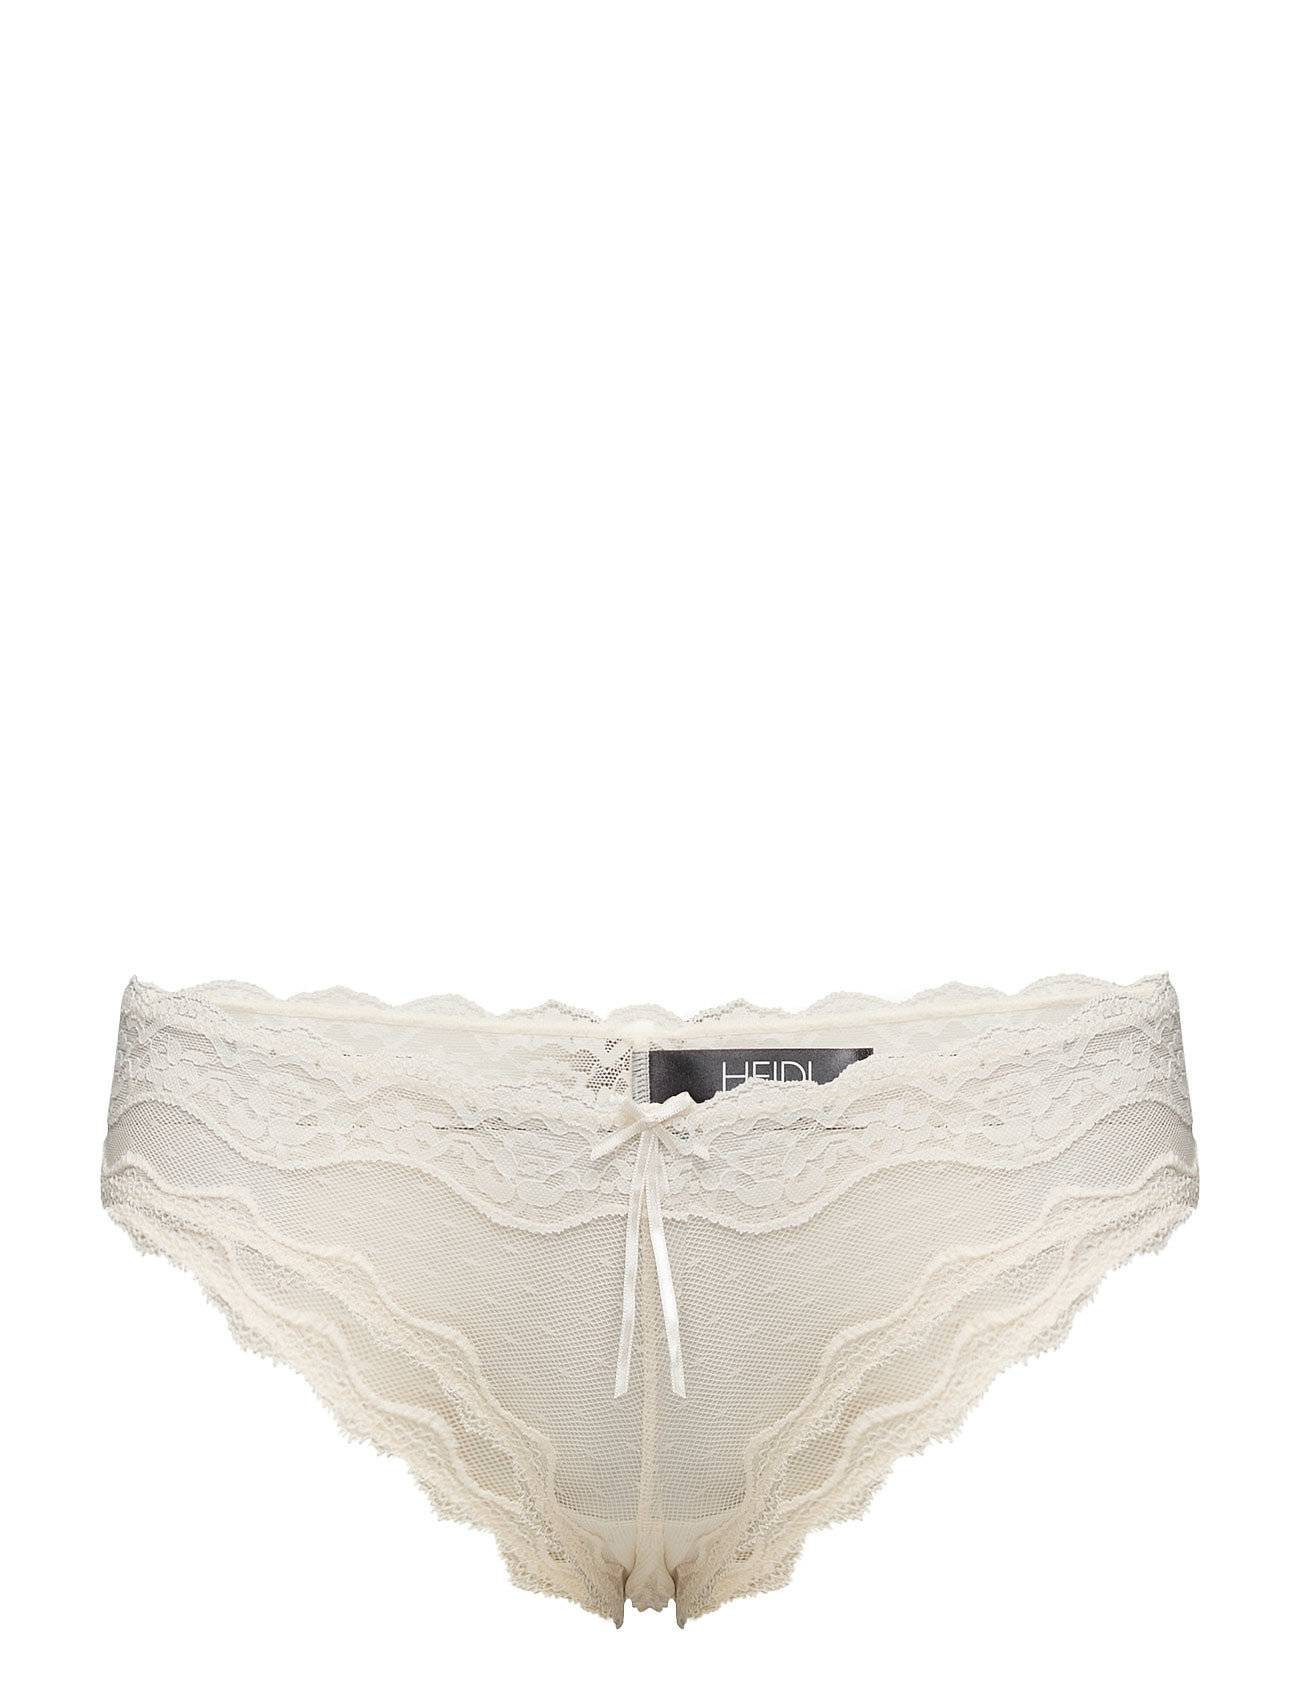 Heidi Klum Intimates Cheeky Hhk Mesh With Lace